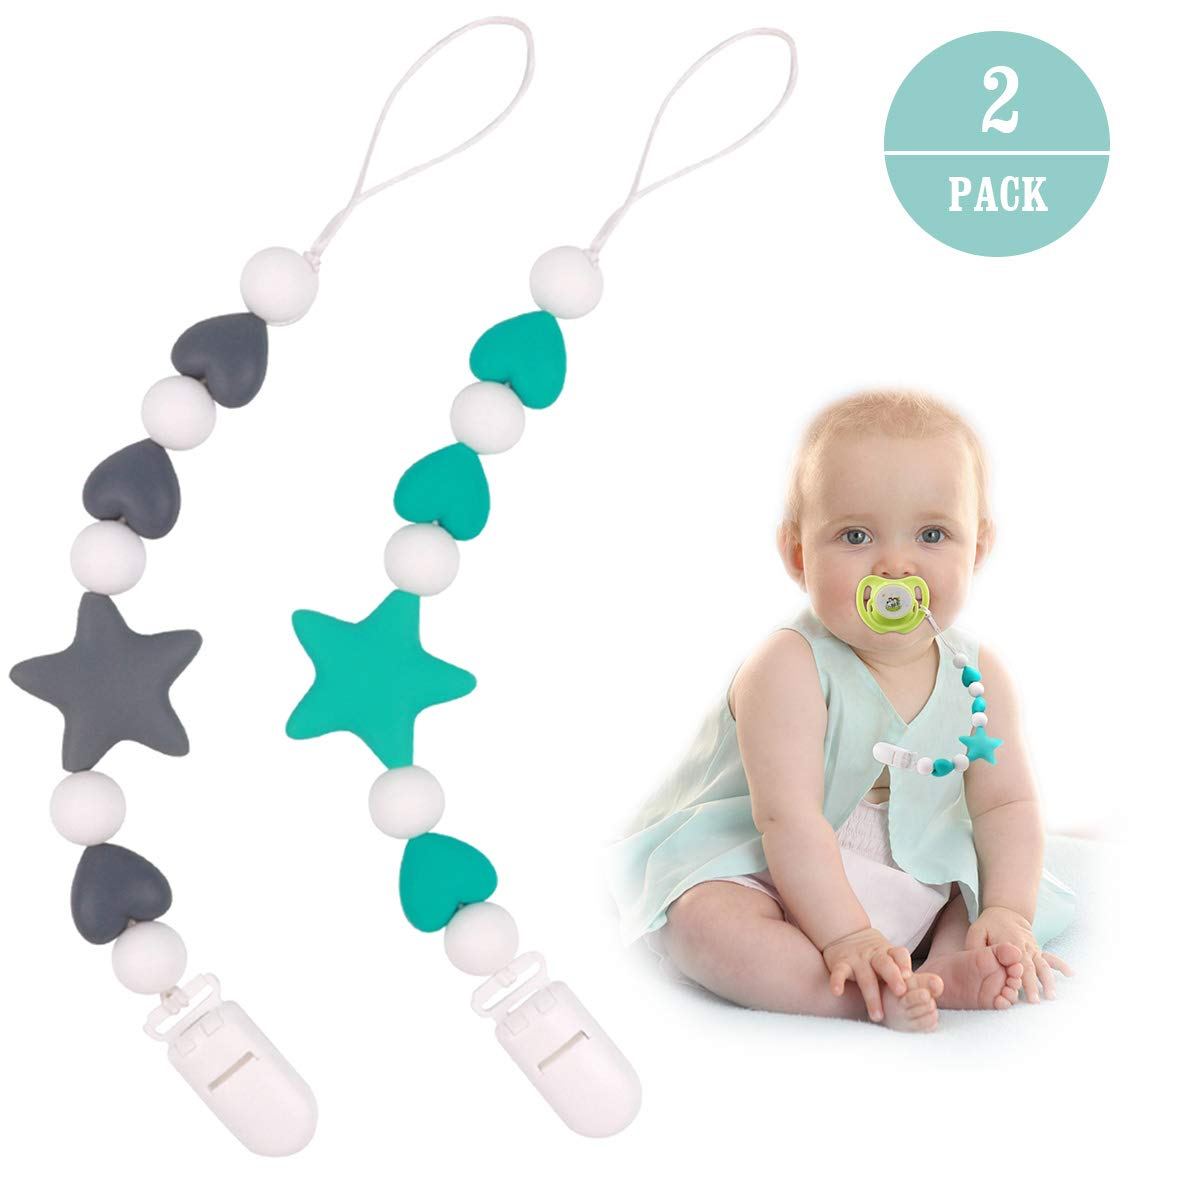 Pacifier Clip Girl, Silicone Baby Teething Relief Toys Beads for Girls, MCGMITT Soothie Pacifier Holder & Binky Clips, Best Baby Shower Gifts 2 Pack RR047-A+B